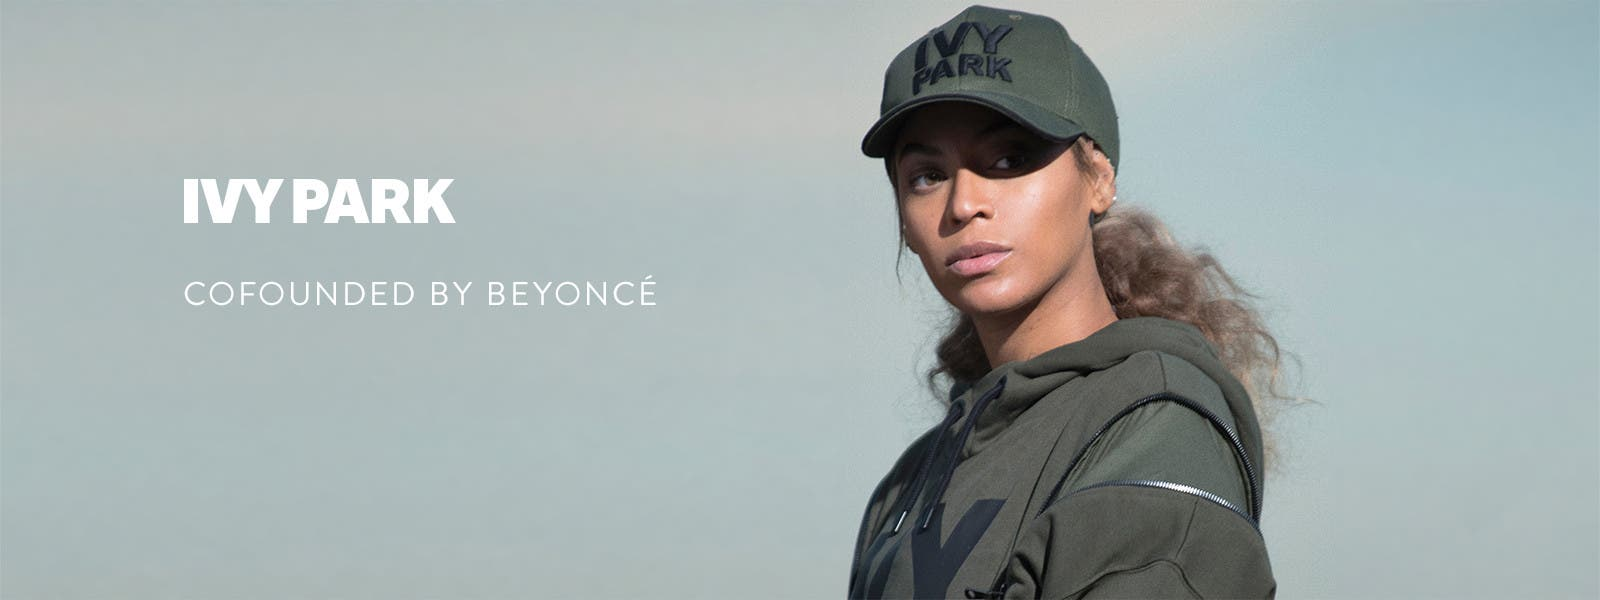 IVY PARK women's activewear.